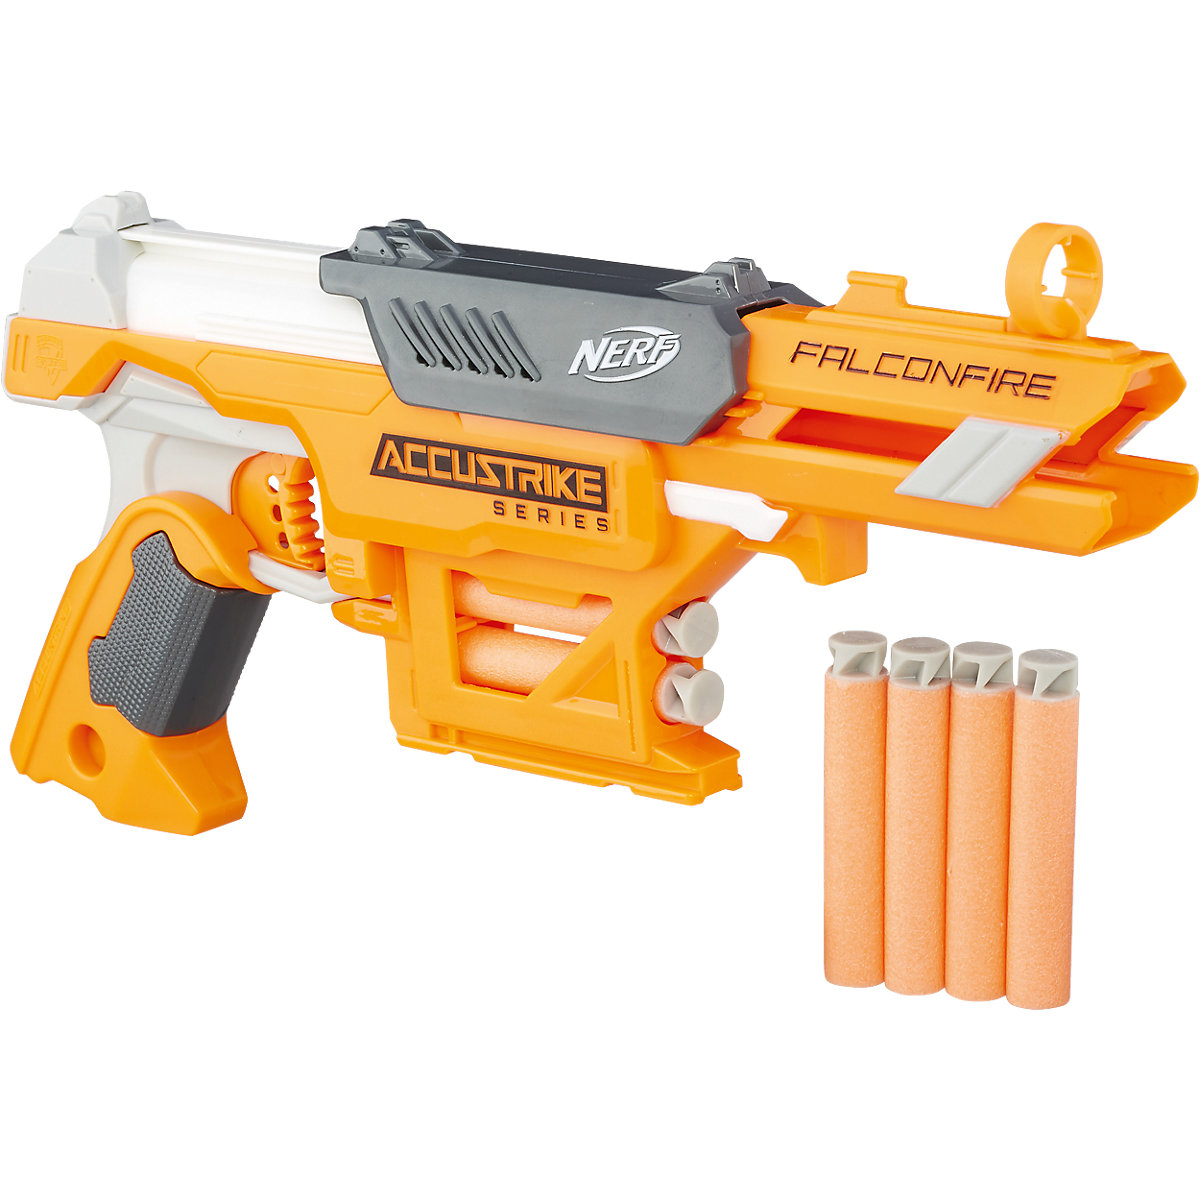 NERF Toy Guns 5104312 gun weapon toys games pneumatic blaster boy orbiz revolver Outdoor Fun Sports toy guns nerf 10023651 children kids toy gun weapon blasters boys shooting games outdoor play